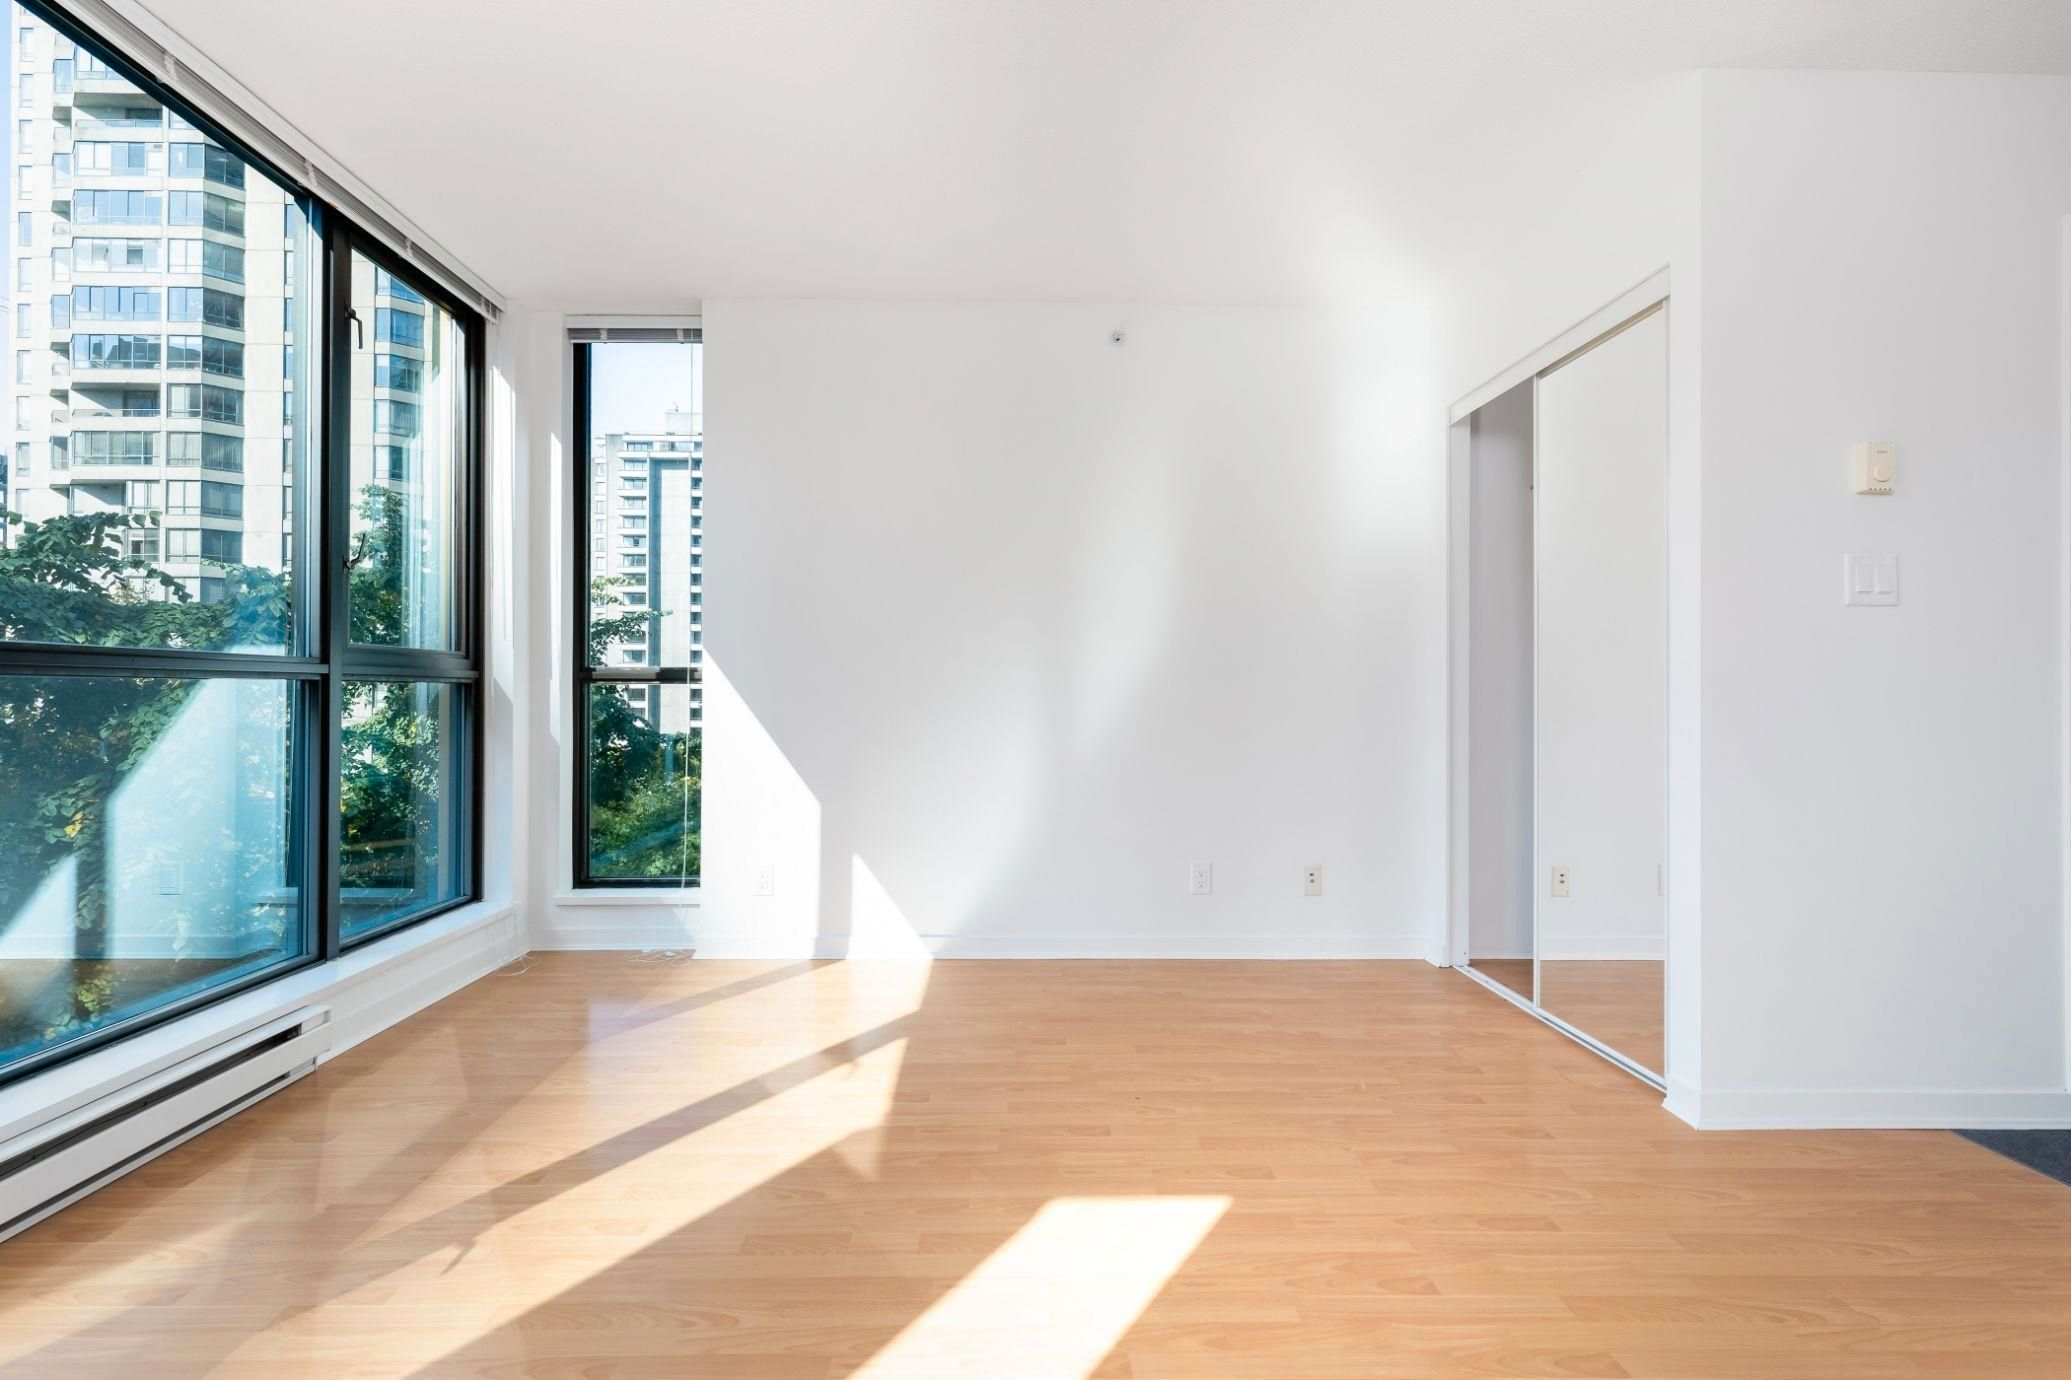 """Main Photo: 509 1331 ALBERNI Street in Vancouver: West End VW Condo for sale in """"THE LIONS"""" (Vancouver West)  : MLS®# R2625060"""